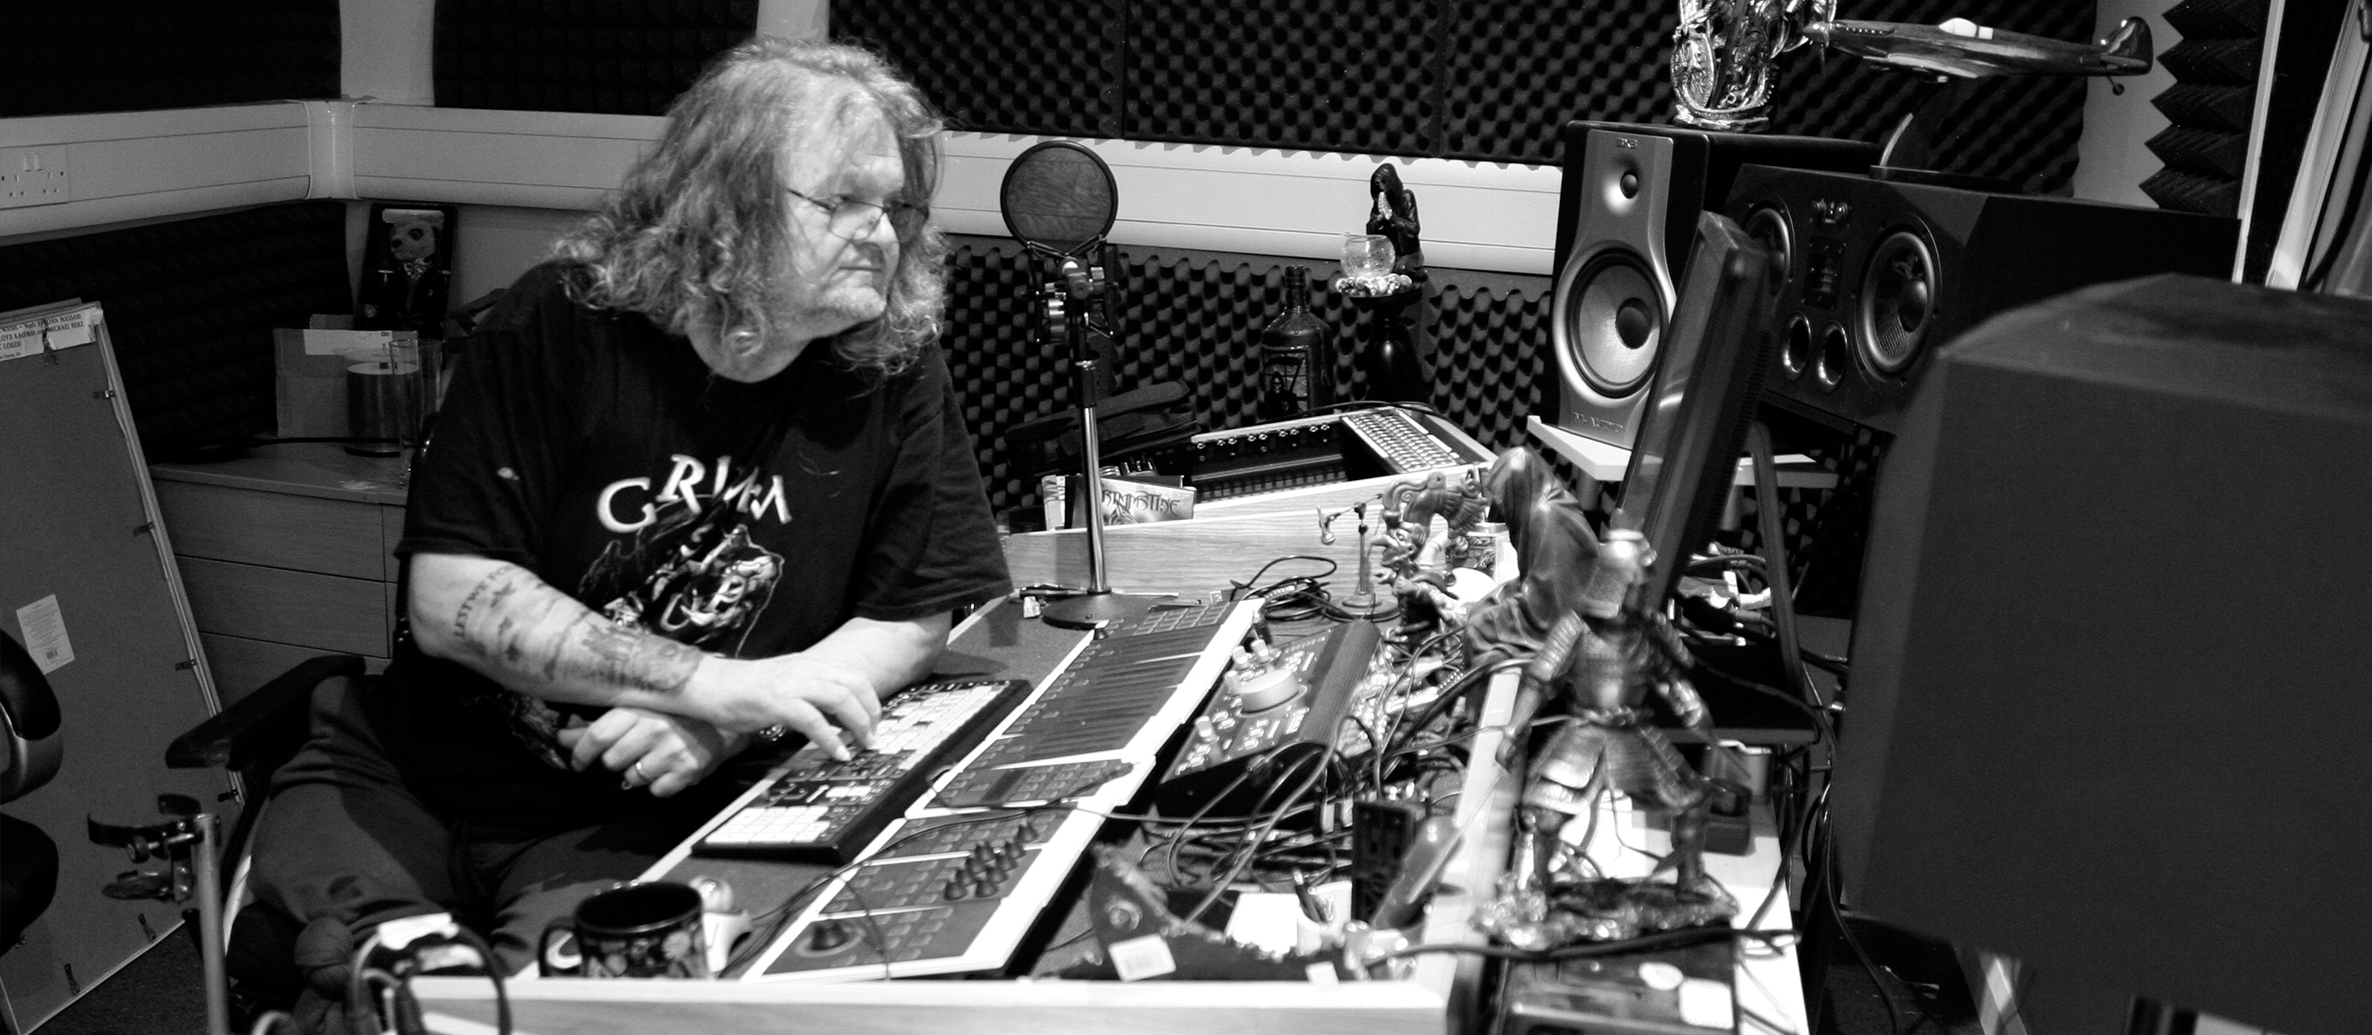 SAMURAI RECORDING STUDIOS – In-house producer Steve Grimmett talks about Dissonance's recording studios.